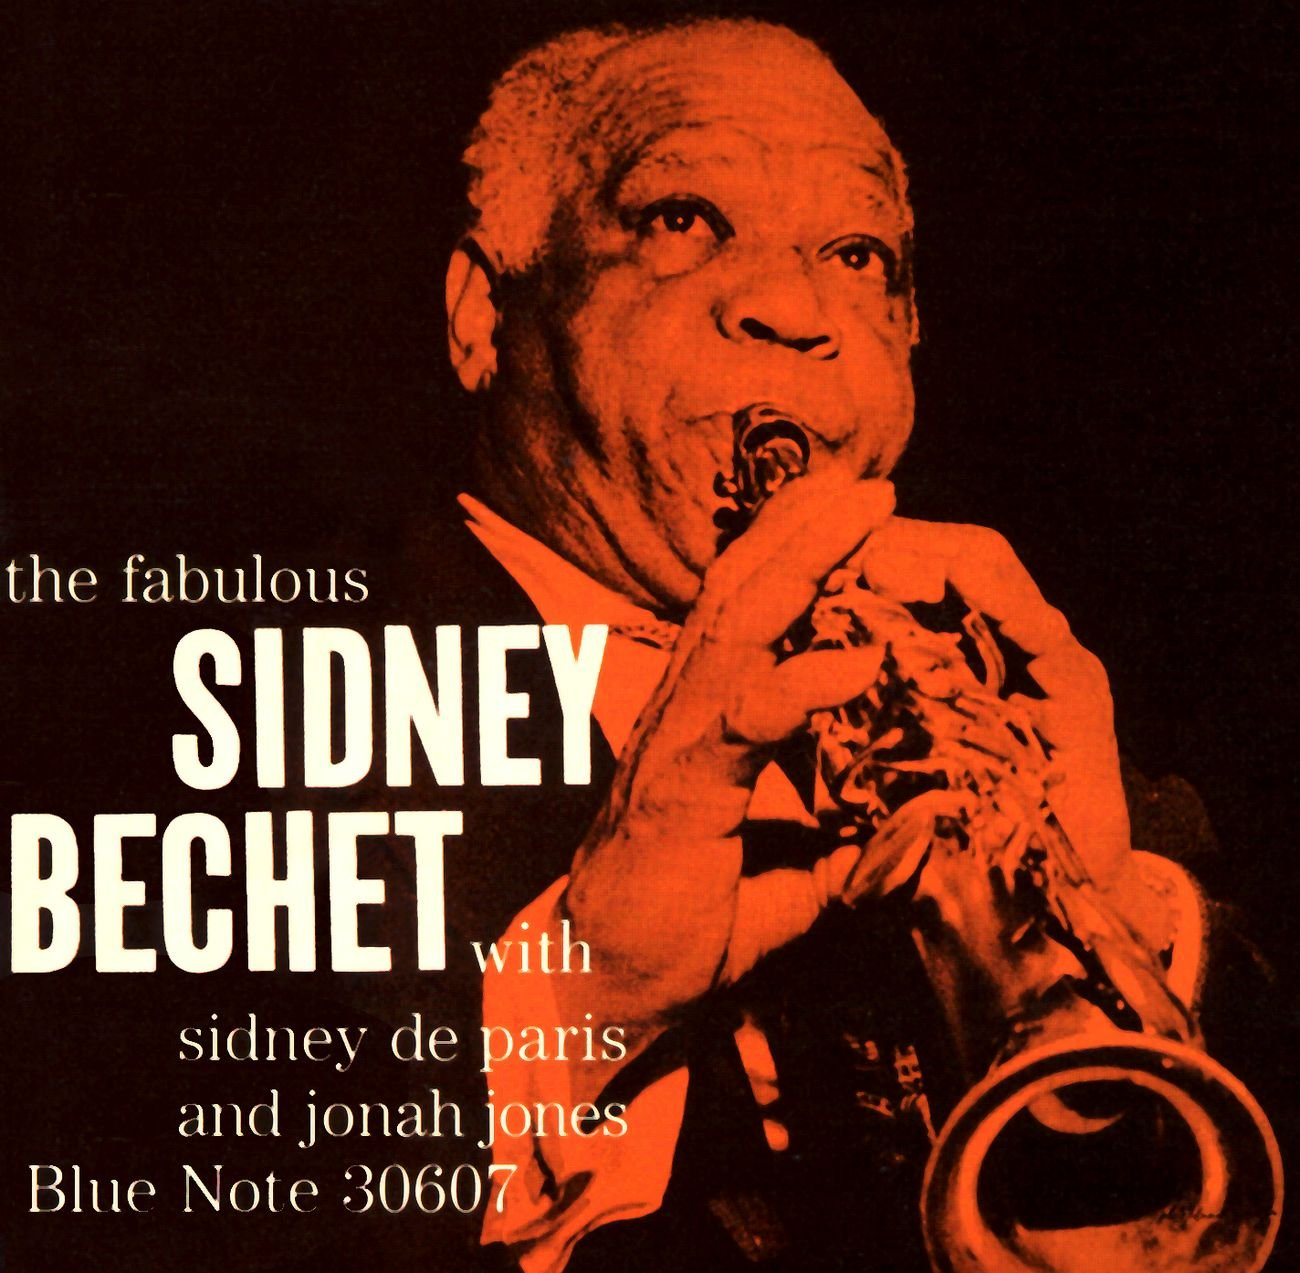 The Fabulous Sidney Bechet